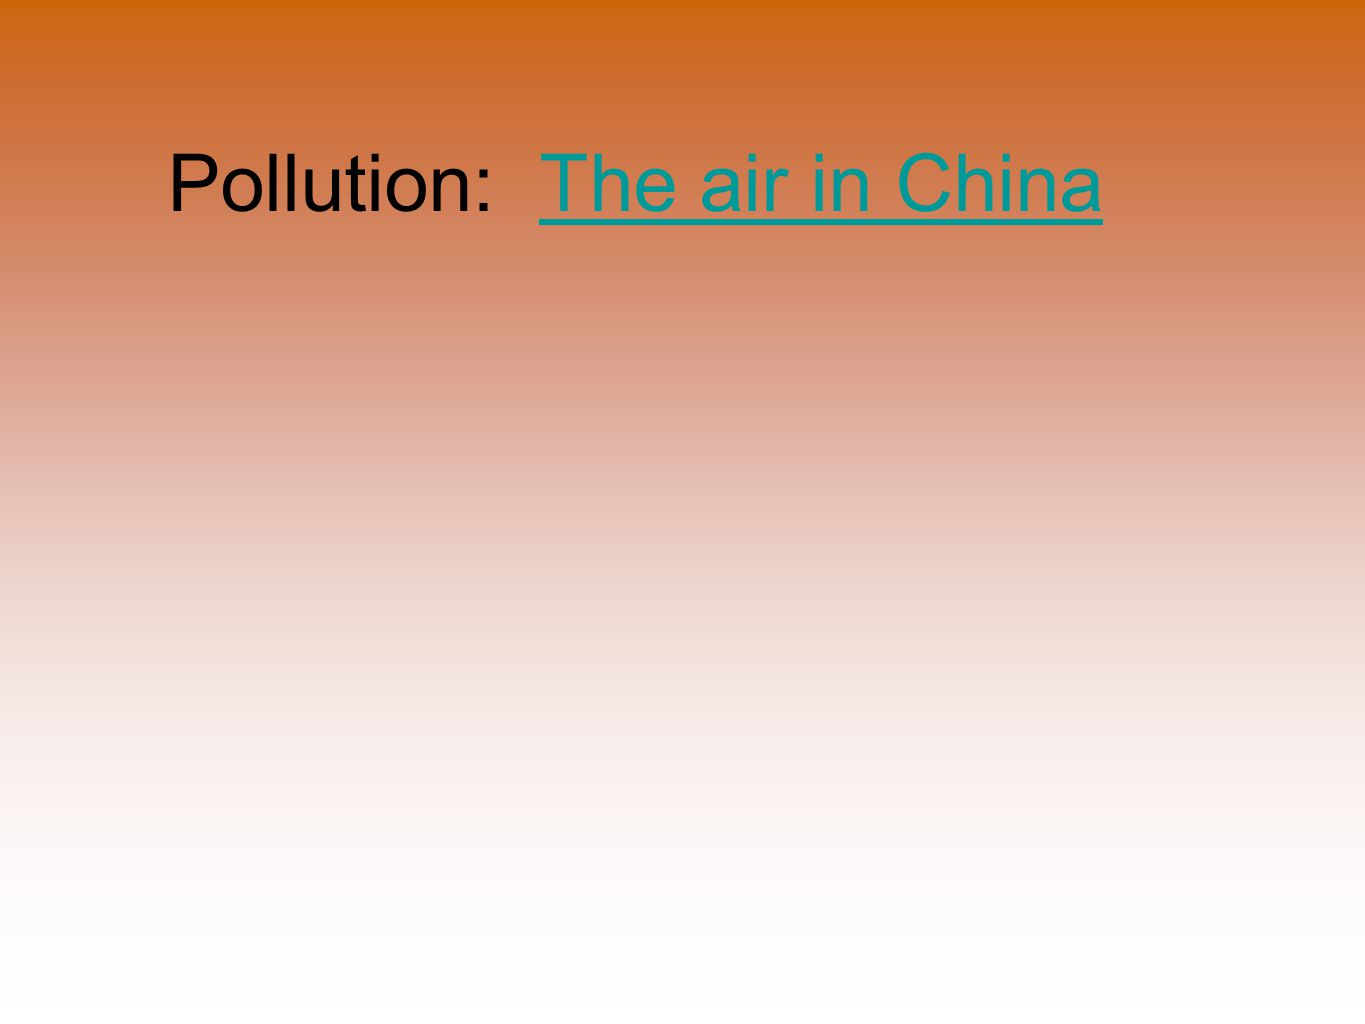 Pollution: The air in ChinaThe air in China